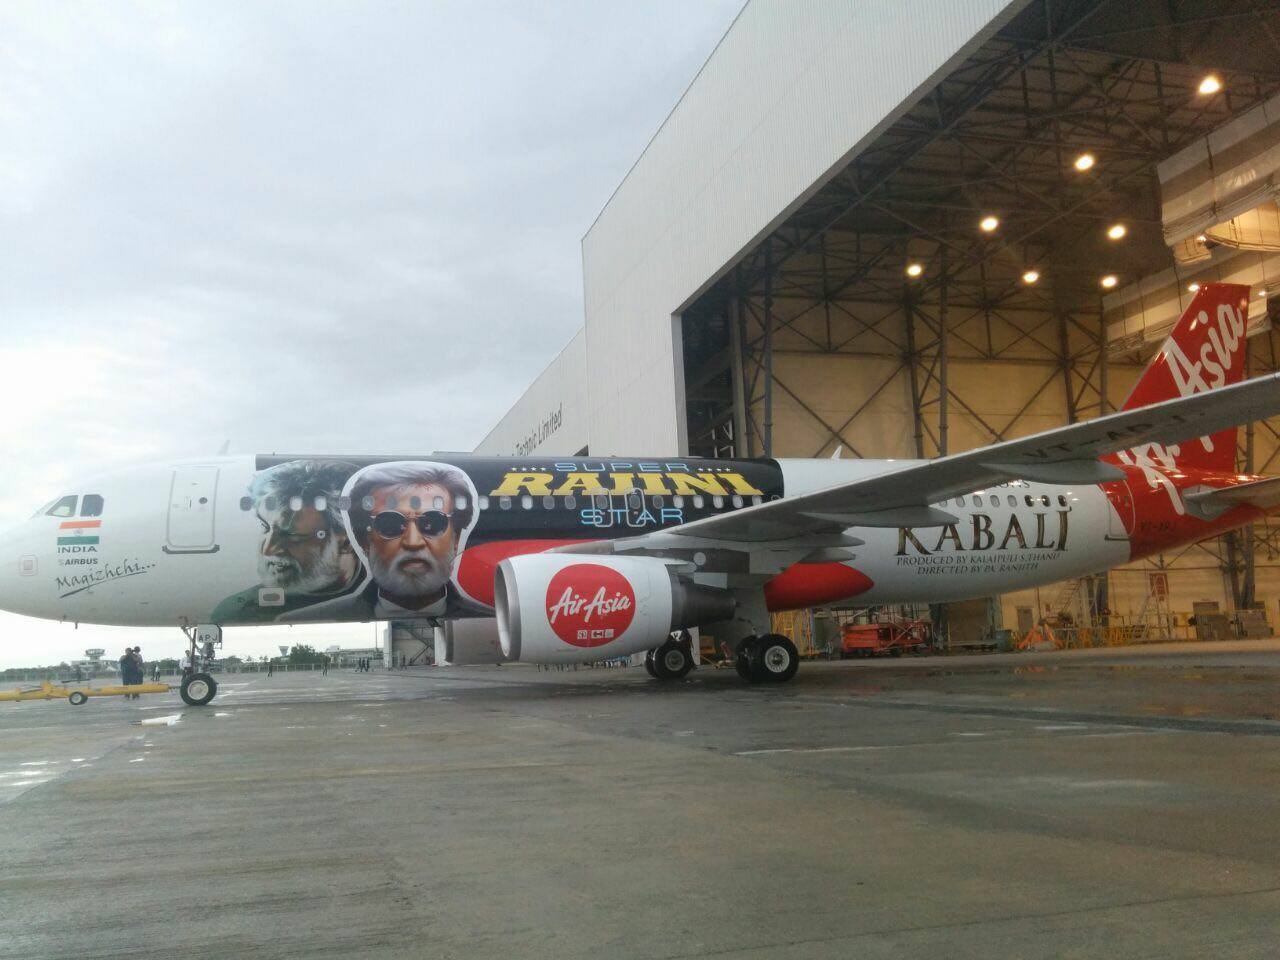 Sky is the limit for Rajinikanth - First Time in Indian Film History - 'Kabali' Painted On International Flights